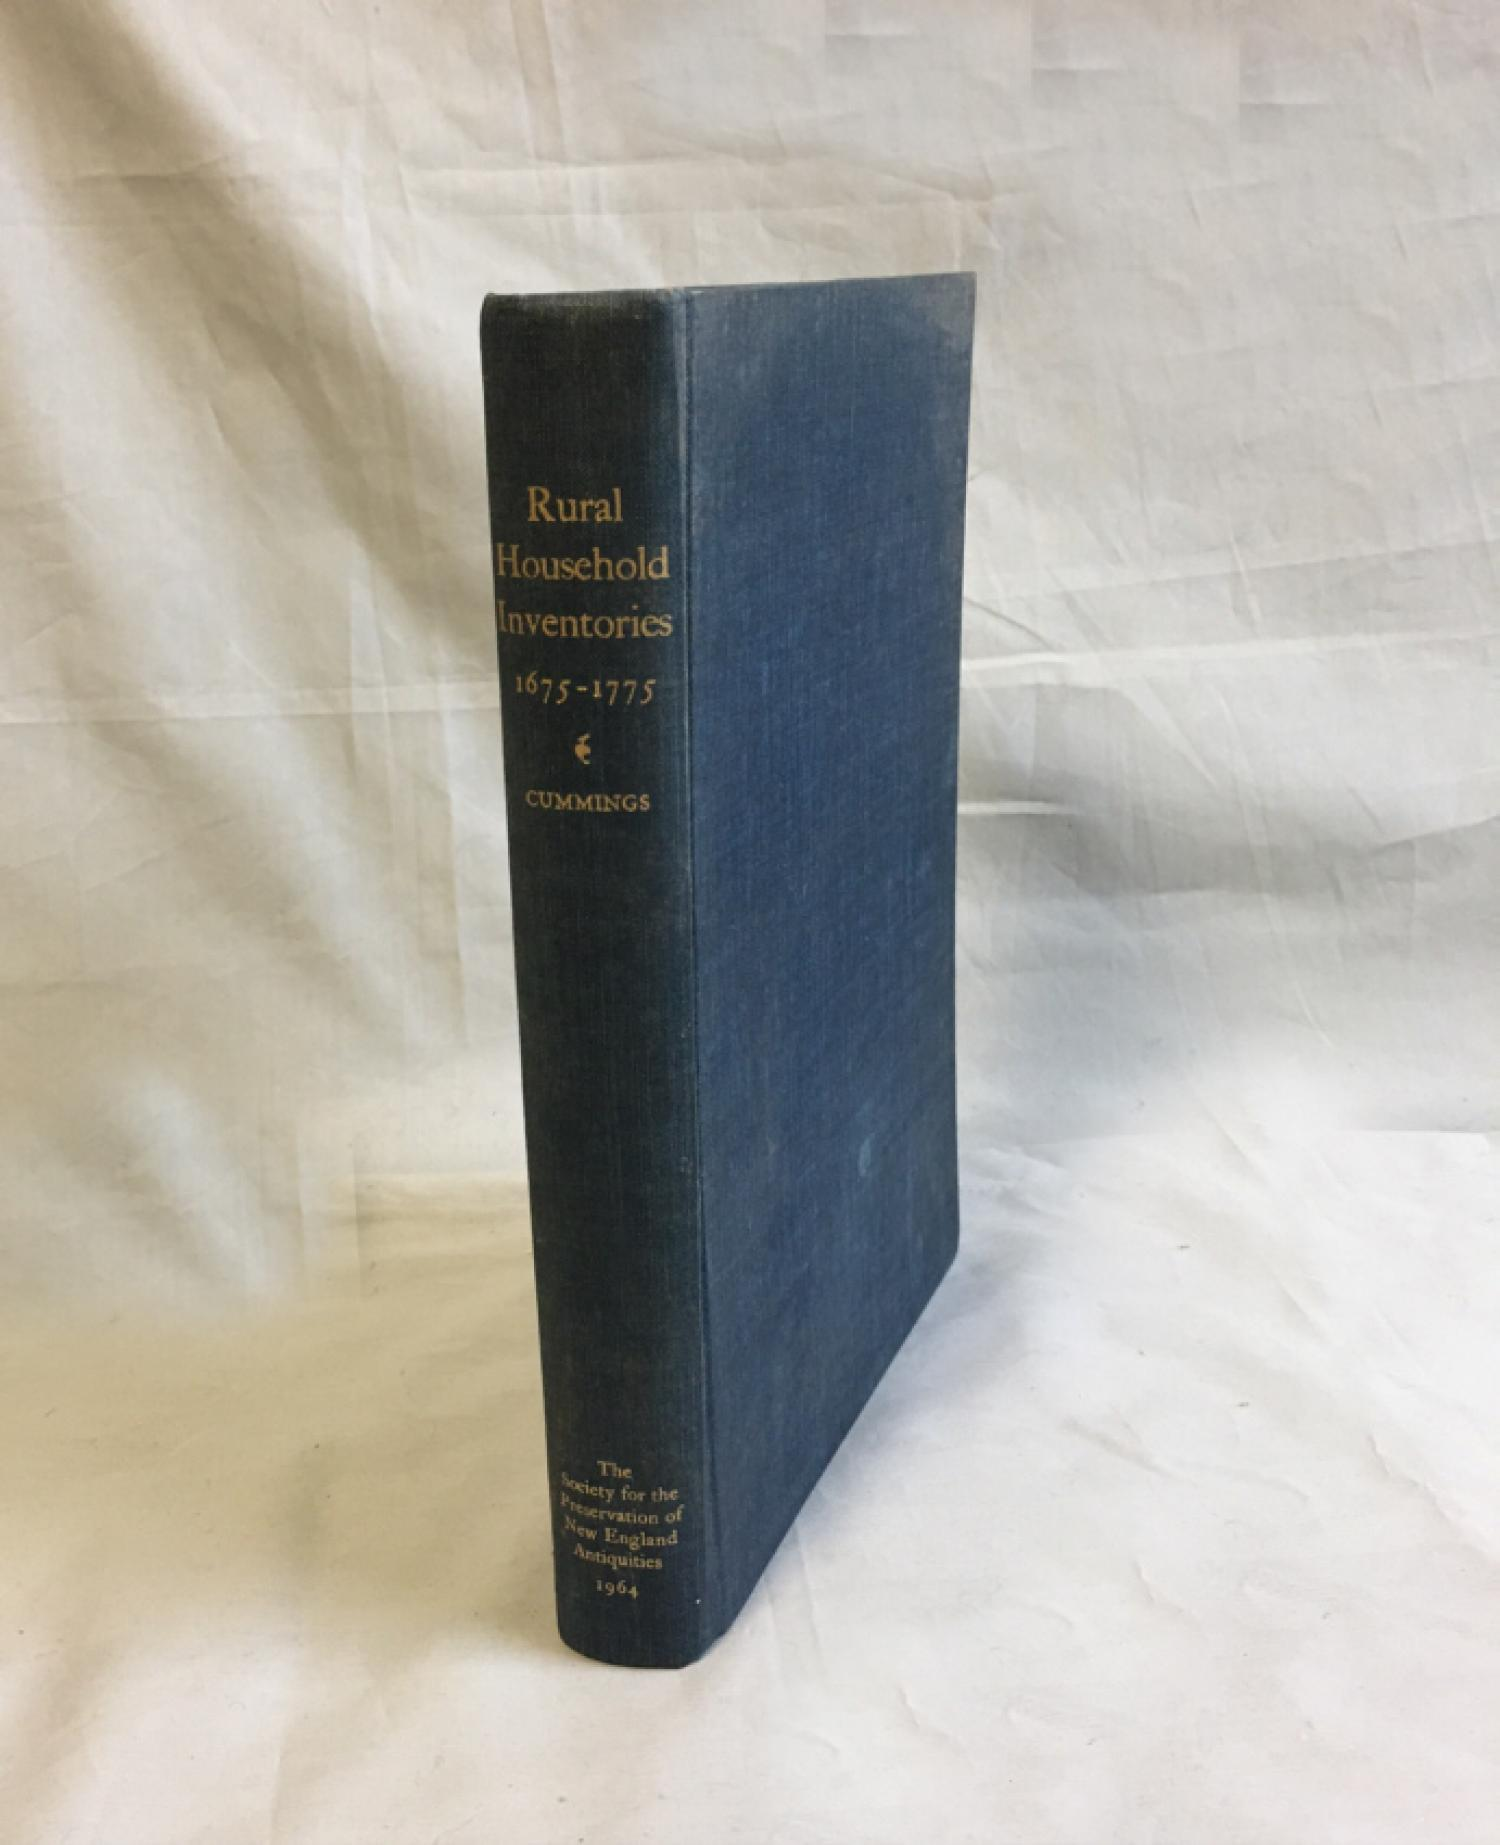 Rural Household Inventories 1675-1775 by A L Cummings 1964